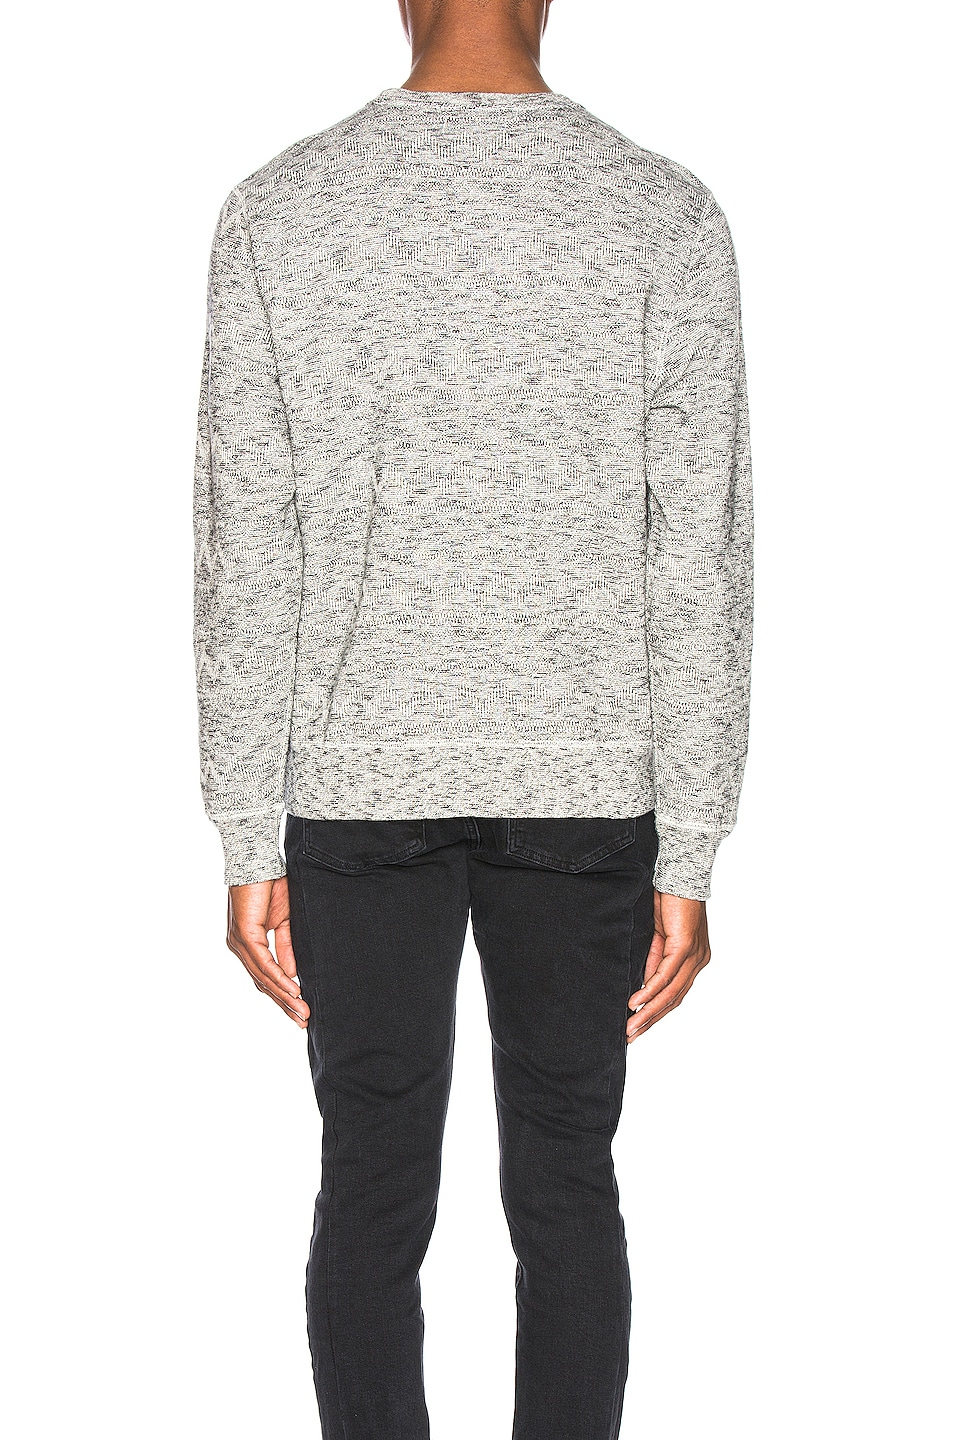 Image 3 of LEVI'S: Made & Crafted Geo Fleece Crewneck in Terry Grey